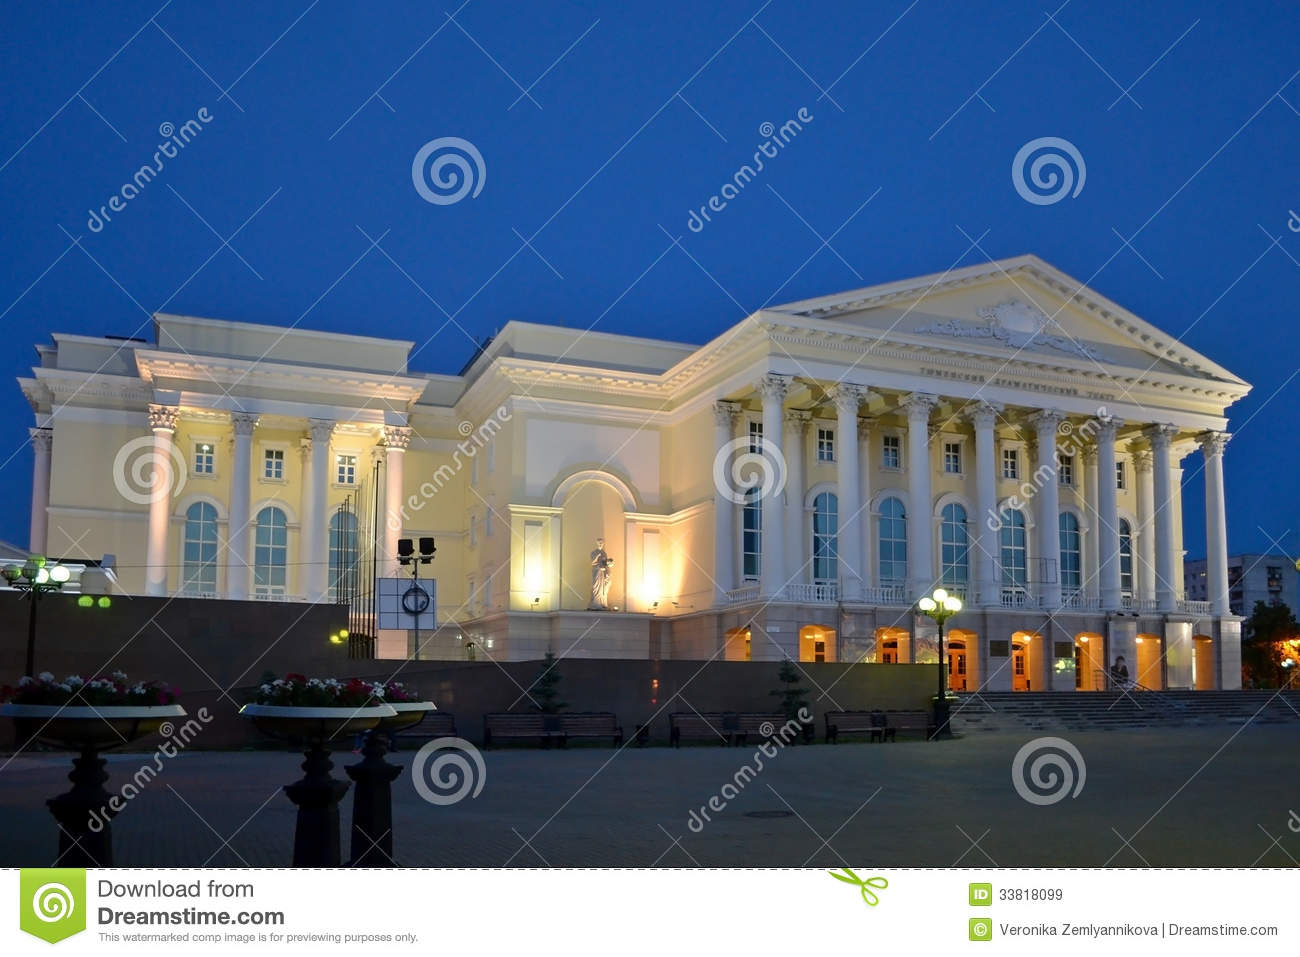 Drama Theater At the Bridge, Perm: description, history, poster, repertoire and reviews 32